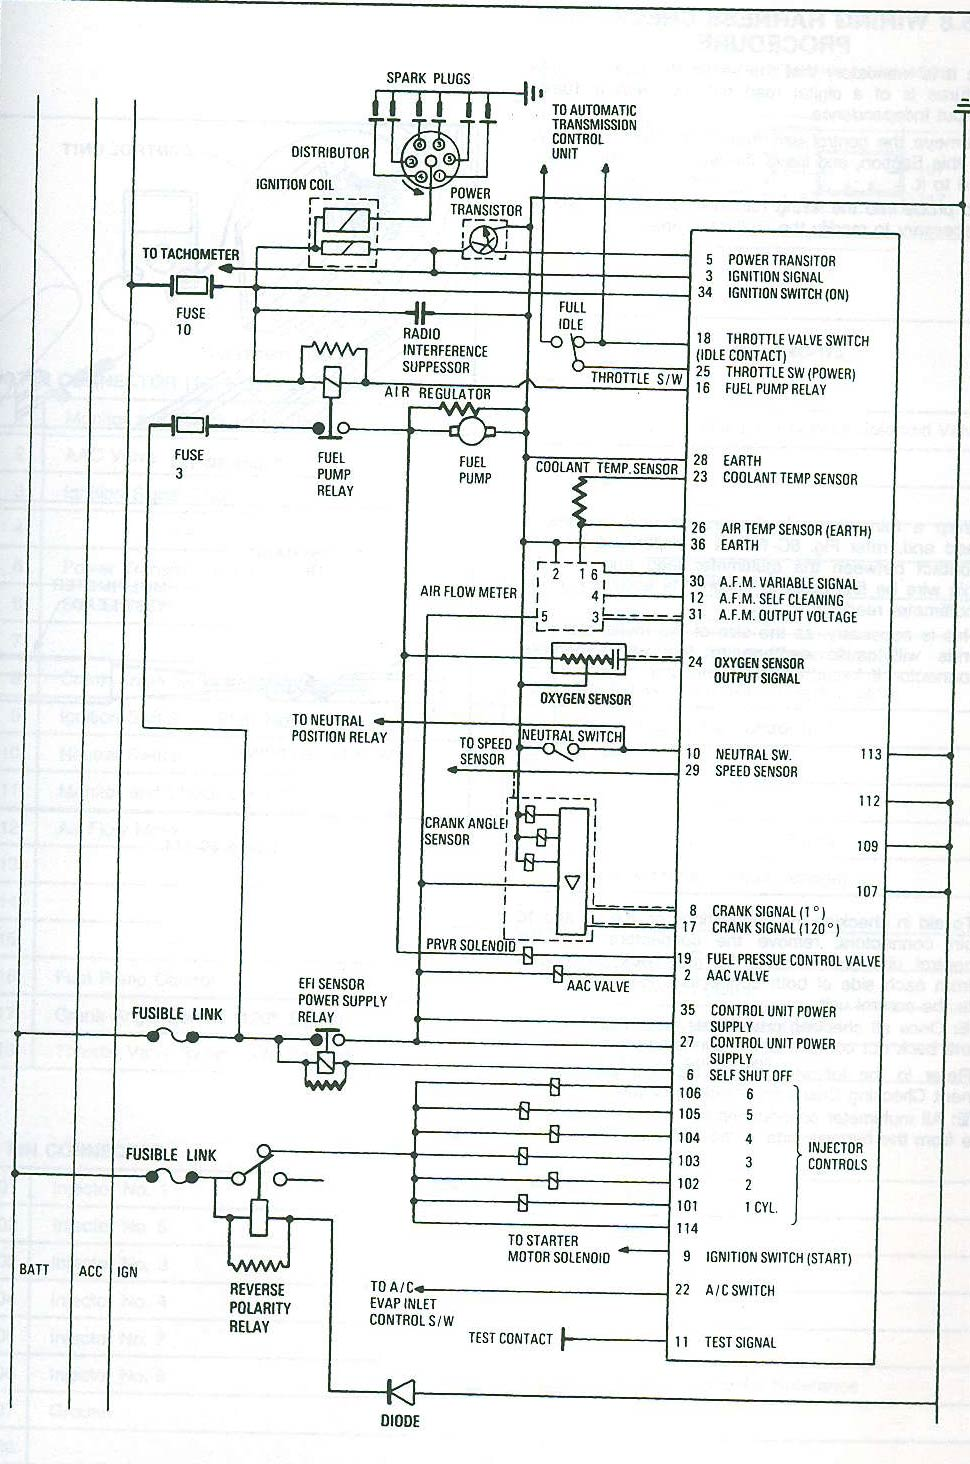 ecuwiring vl commodore dash wiring diagram efcaviation com 280zx alternator wiring diagram at fashall.co